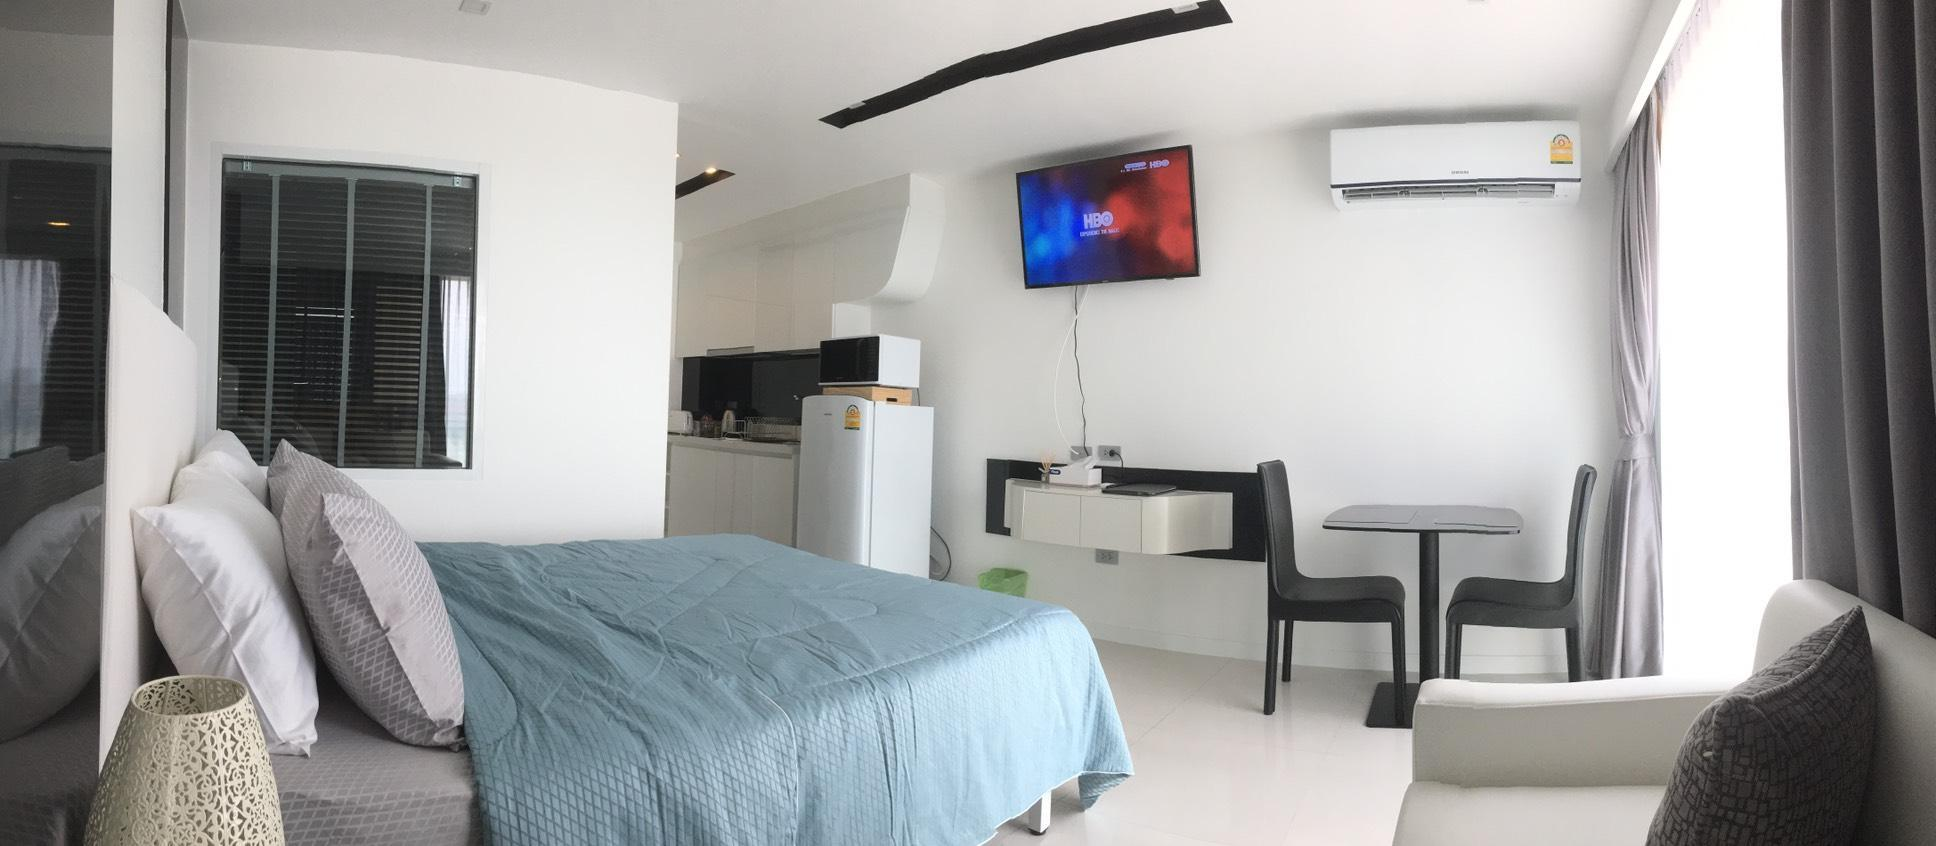 Hotel Reviews: VIP Pattaya Praivate Studio Queen Bed Pattaya 3 Rd – Picture, Room Prices and Deals